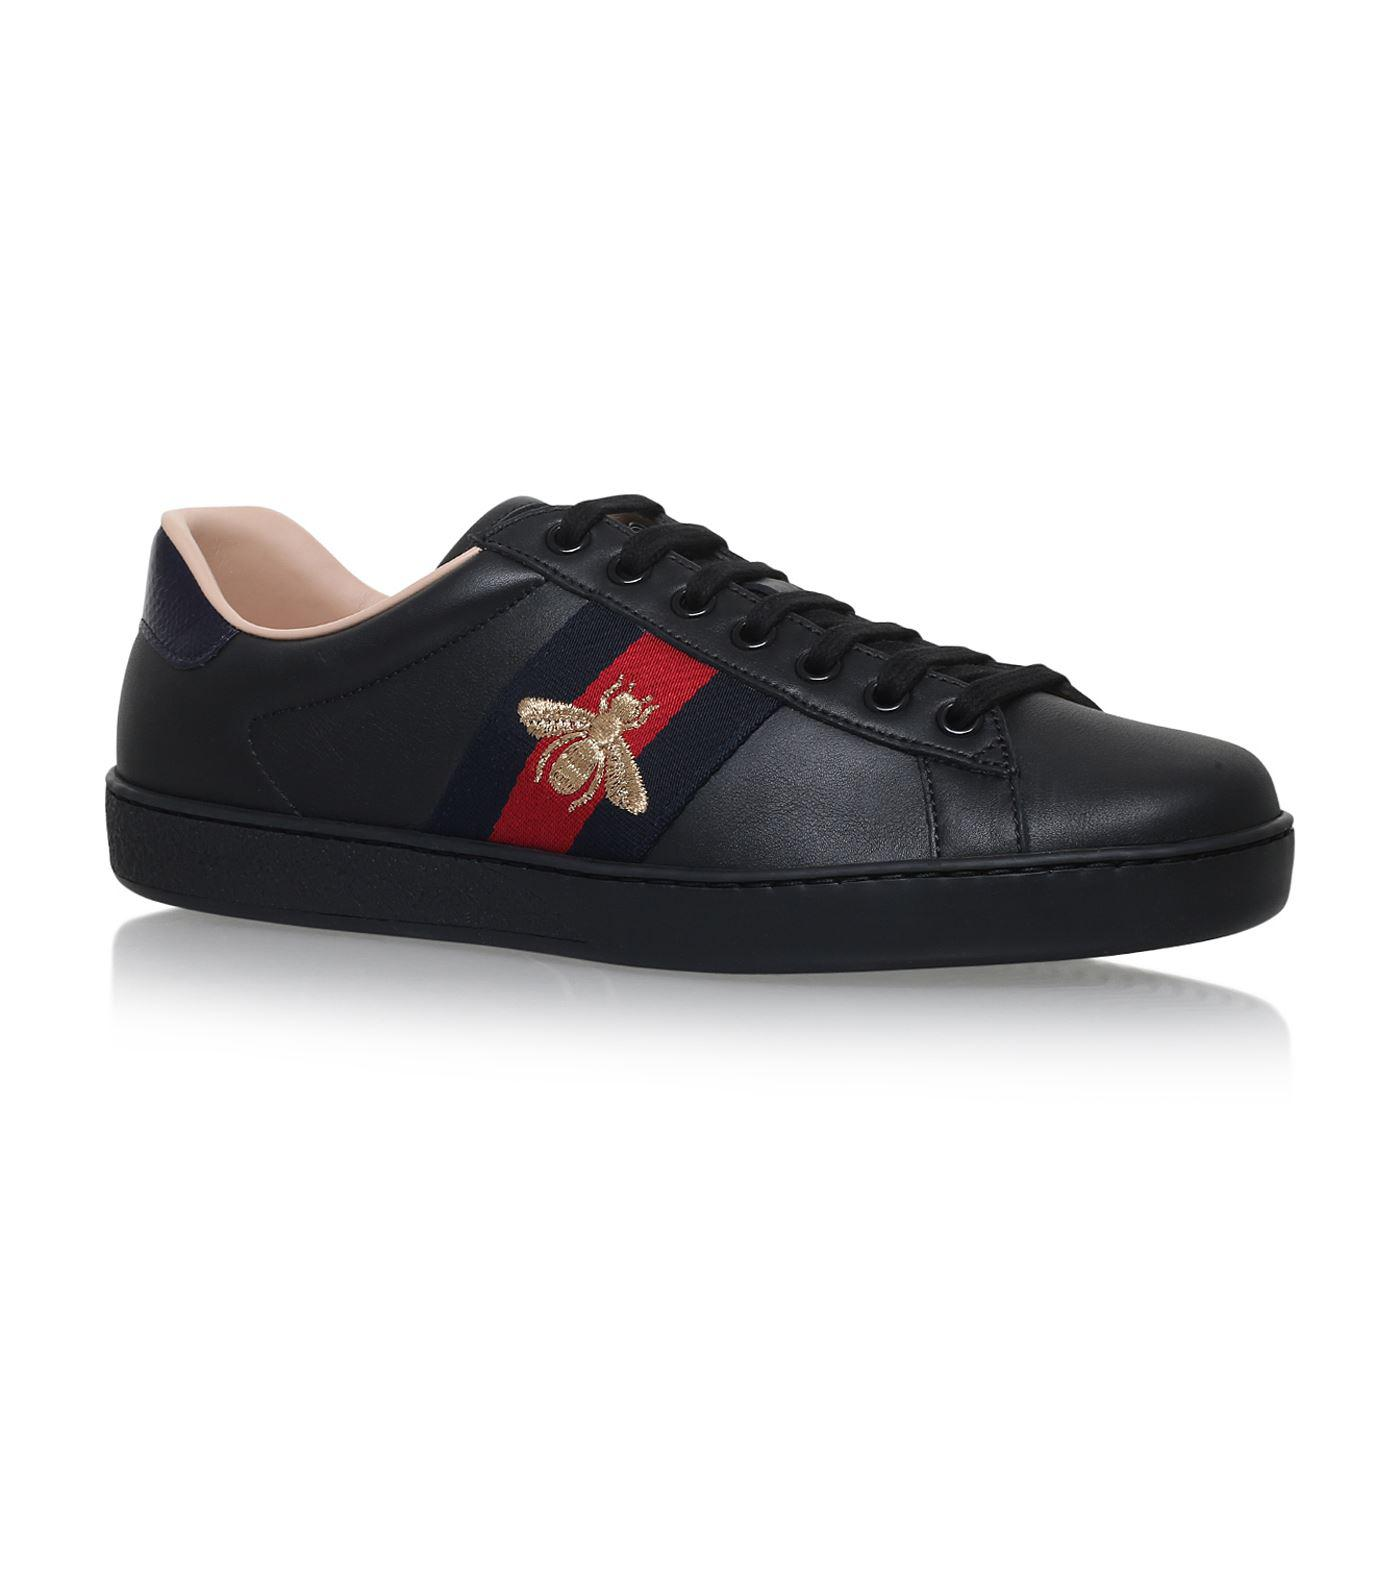 ffc4177ee04 Gucci - Black Ace Bee Sneakers for Men - Lyst. View fullscreen